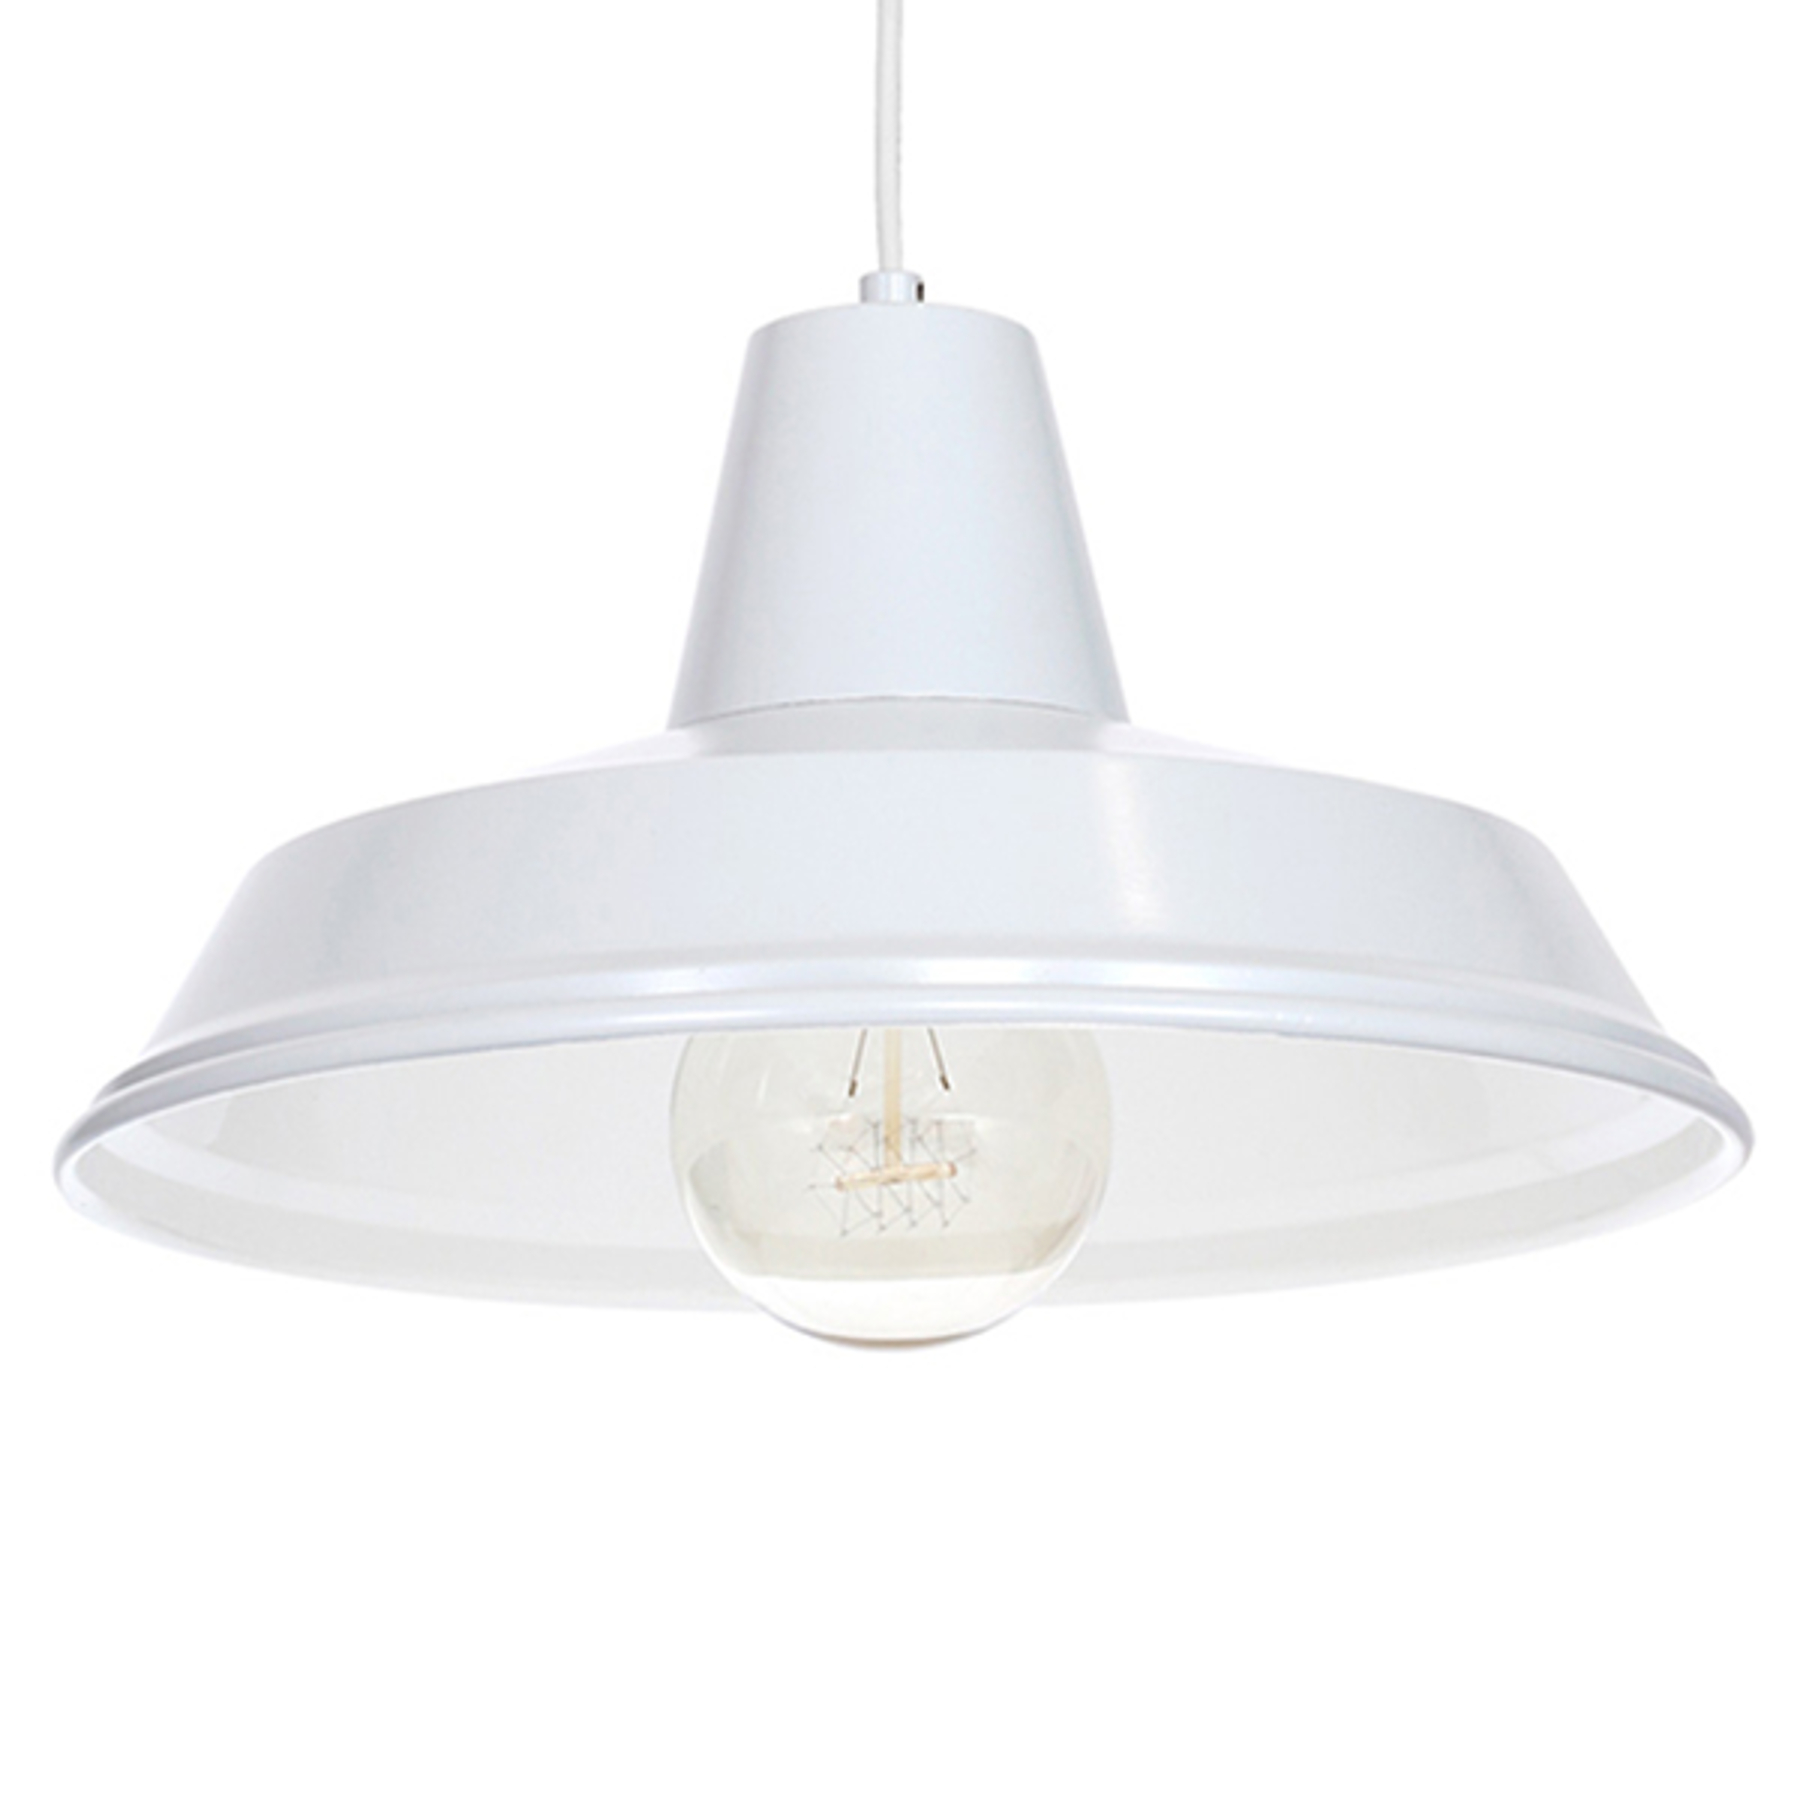 Hanglamp Class, wit/wit